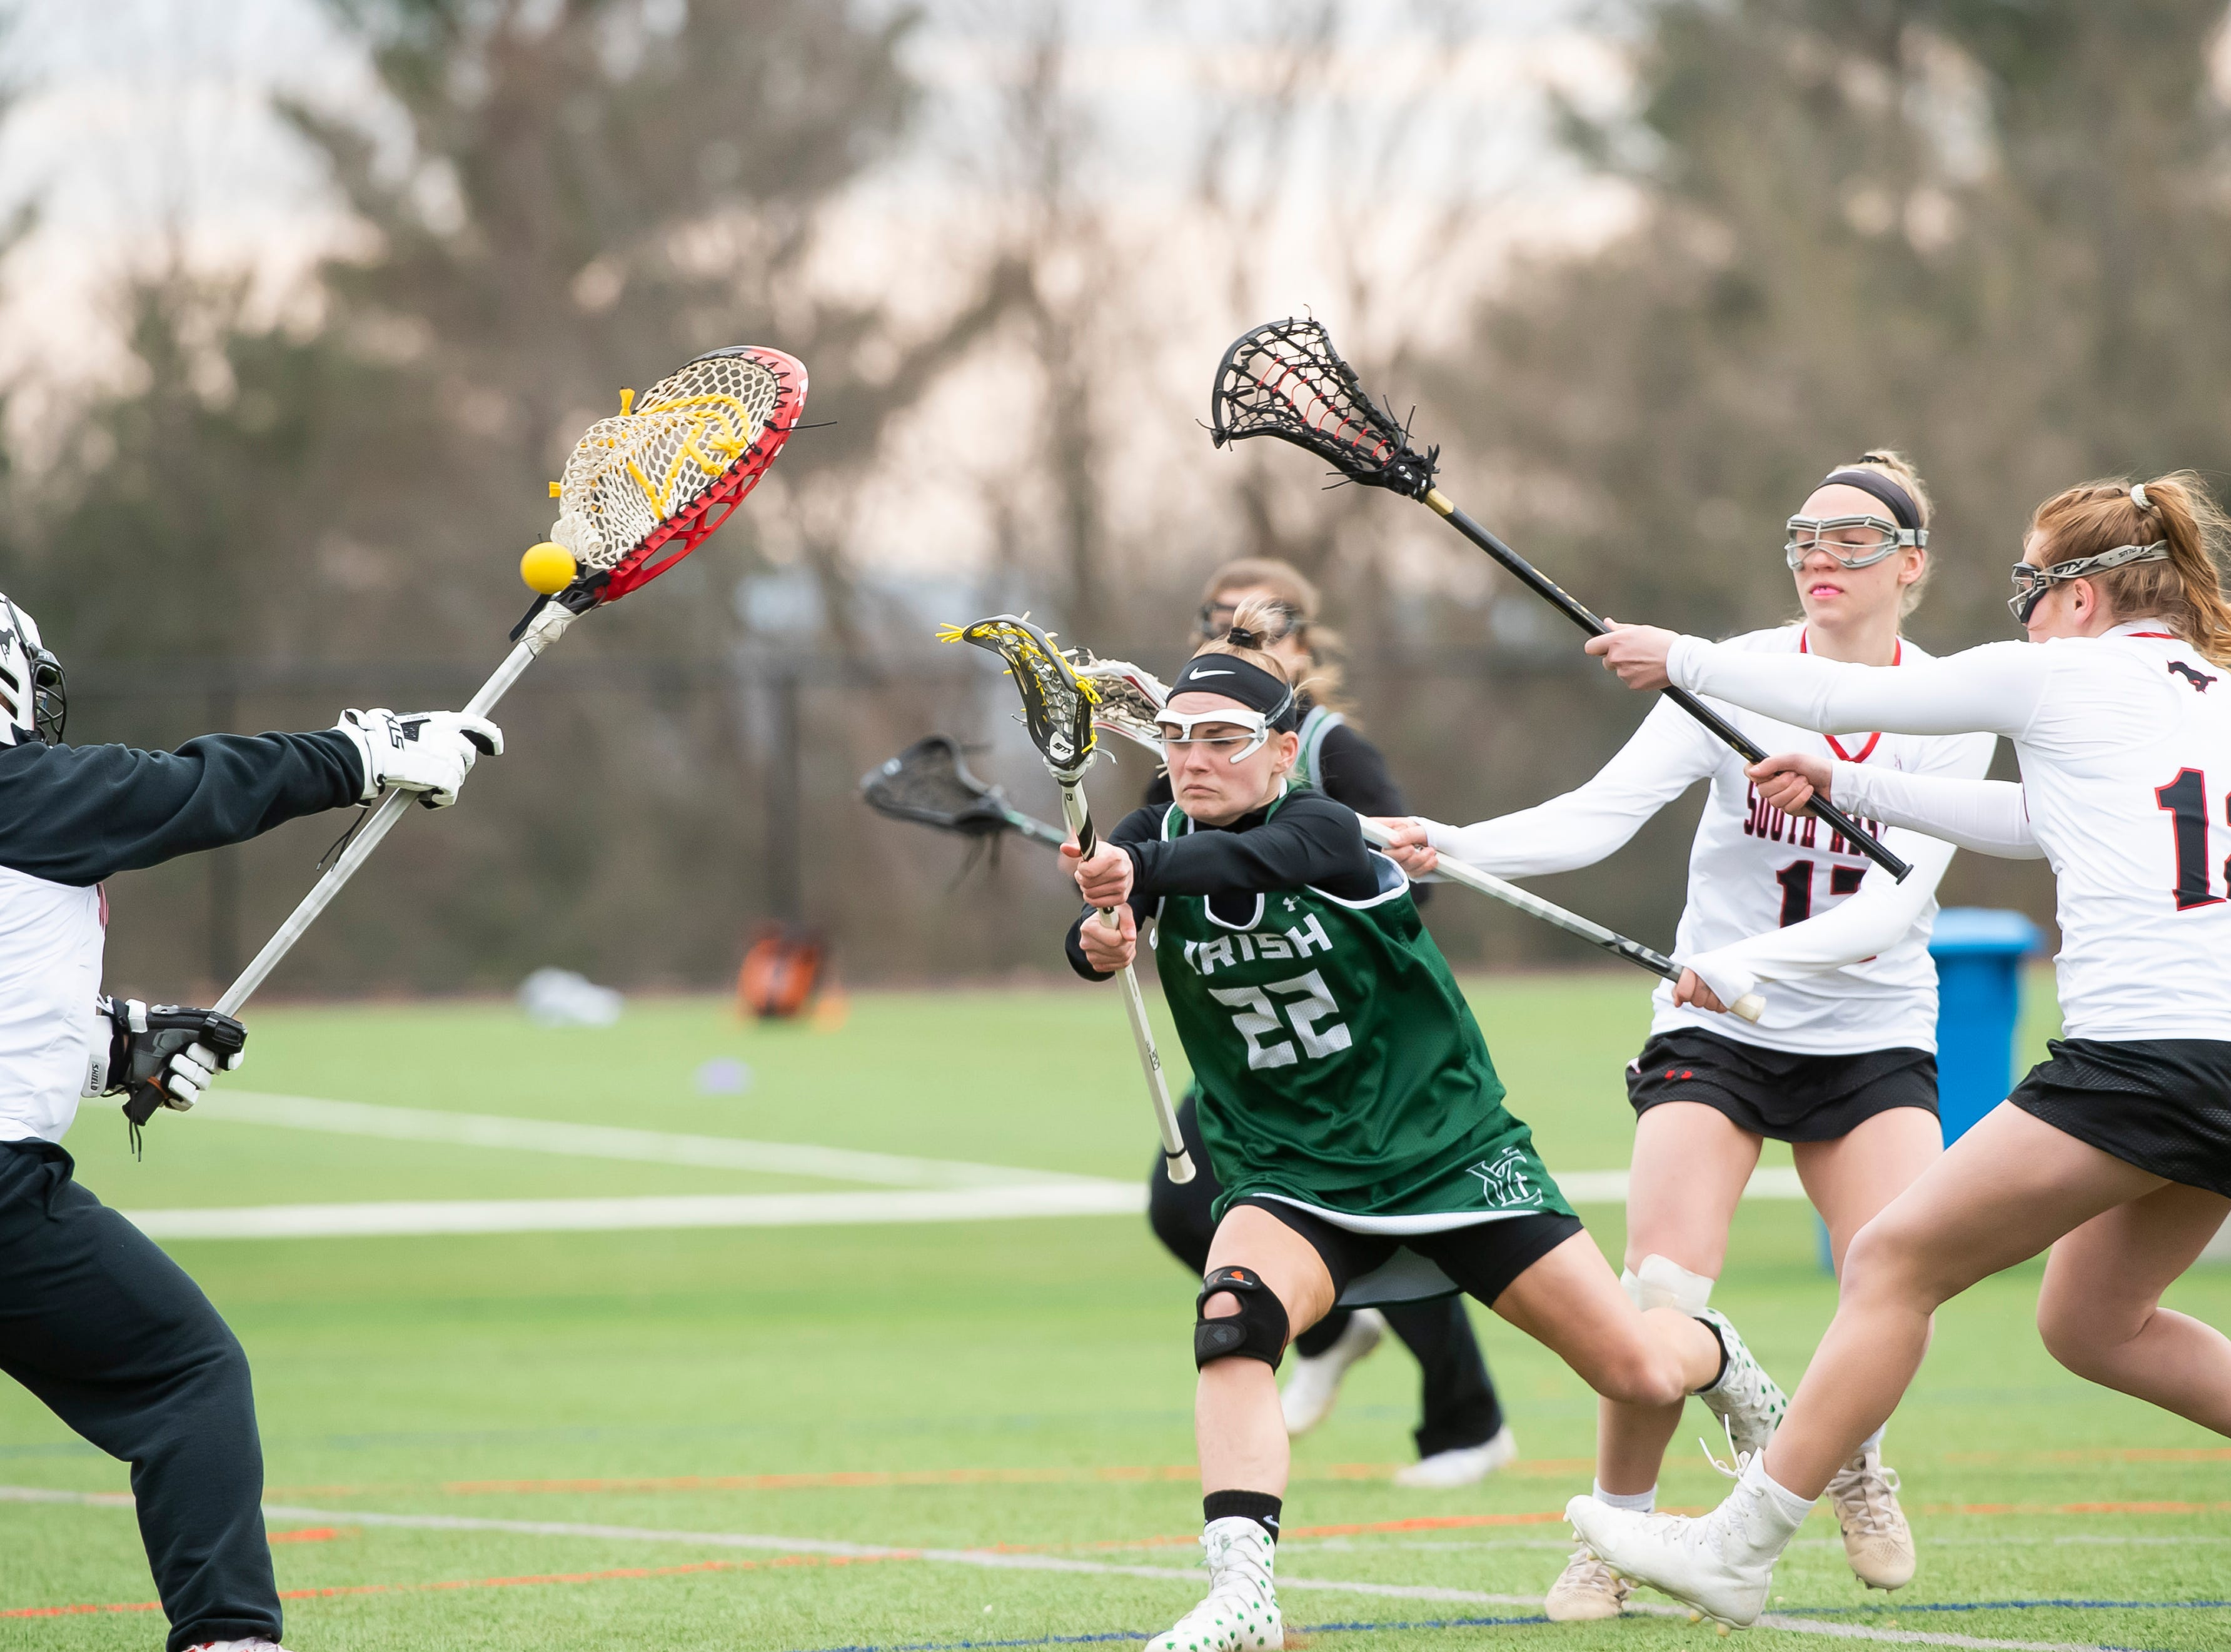 York Catholic's Natalie Neiman (22) scores on a shot during a YAIAA lacrosse game against South Western in Hanover on Tuesday, April 2, 2019. Neiman finished with three goals and two assists as York Catholic won 19-7 and improved to 5-0.